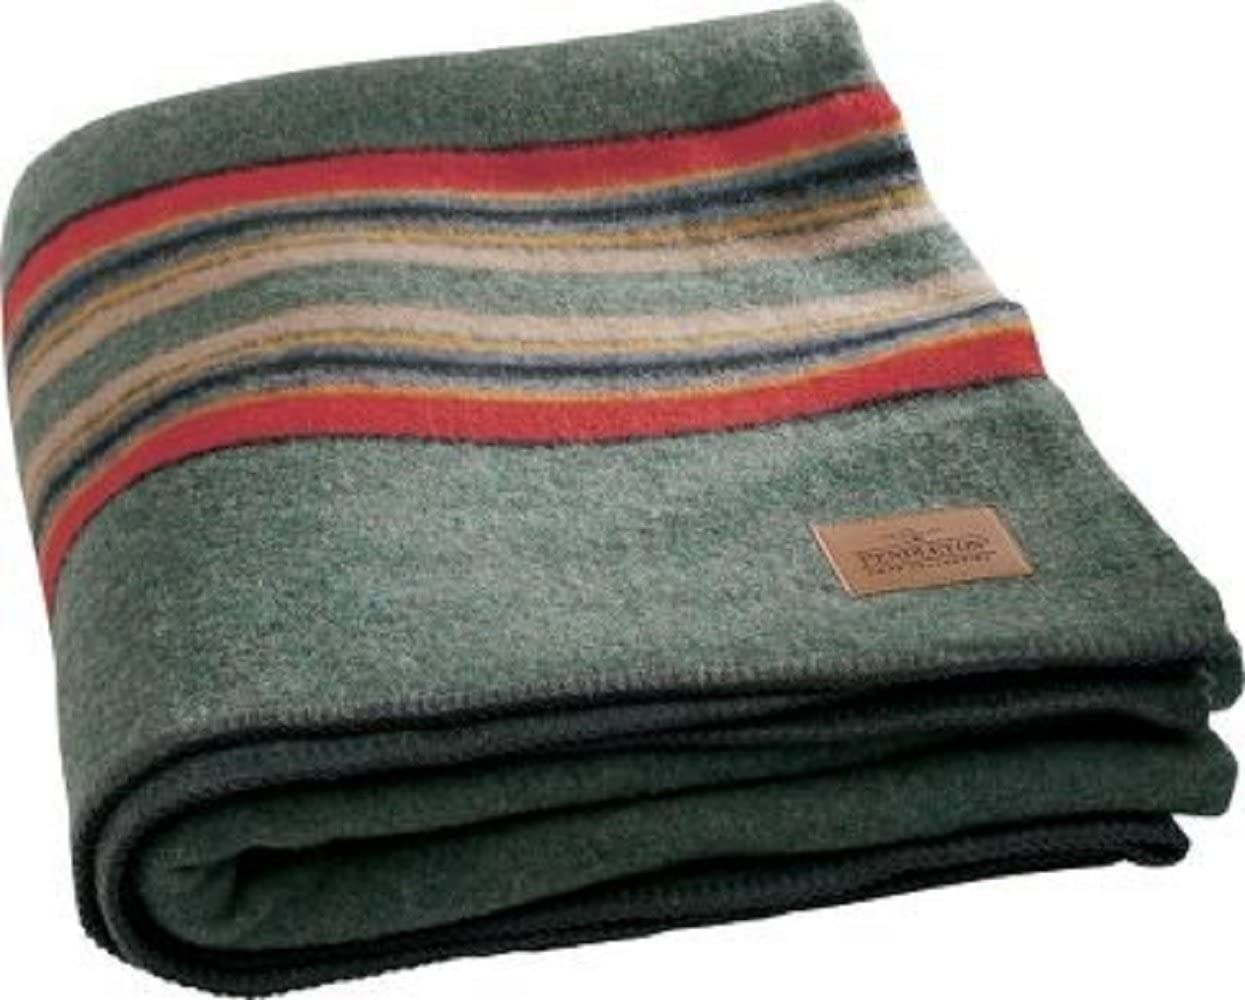 Pendleton Yakima Twin Camp W Carrier Blanket One Size Green Heather Amazon Co Uk Kitchen Home